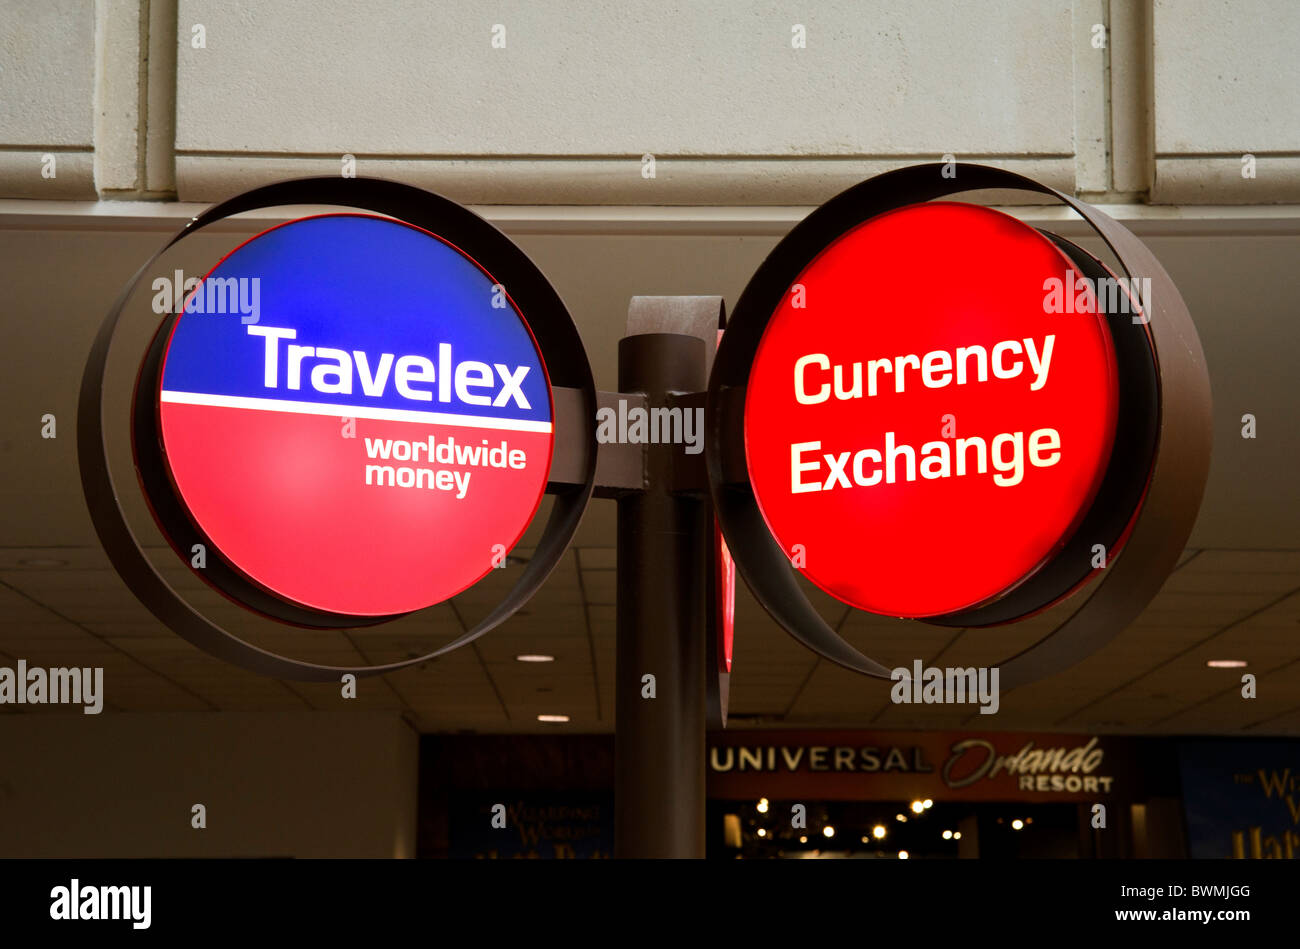 Travelex Currency Exchange Desk at Orlando International Airport, Florida, USA Stock Photo